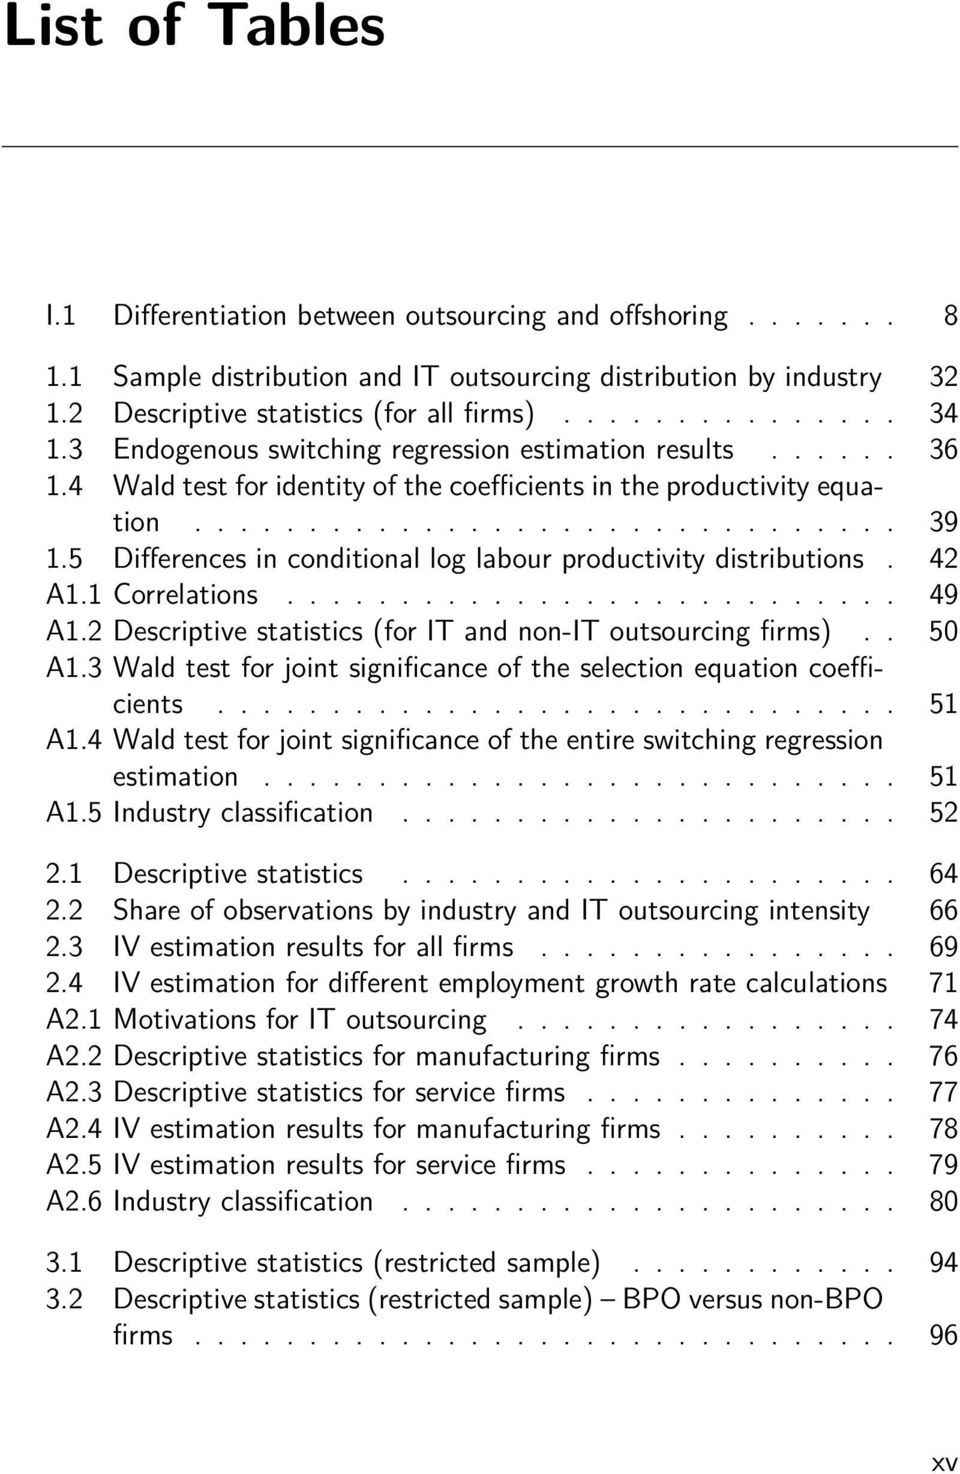 5 Differences in conditional log labour productivity distributions. 42 A1.1 Correlations........................... 49 A1.2 Descriptive statistics (for IT and non-it outsourcing firms).. 50 A1.